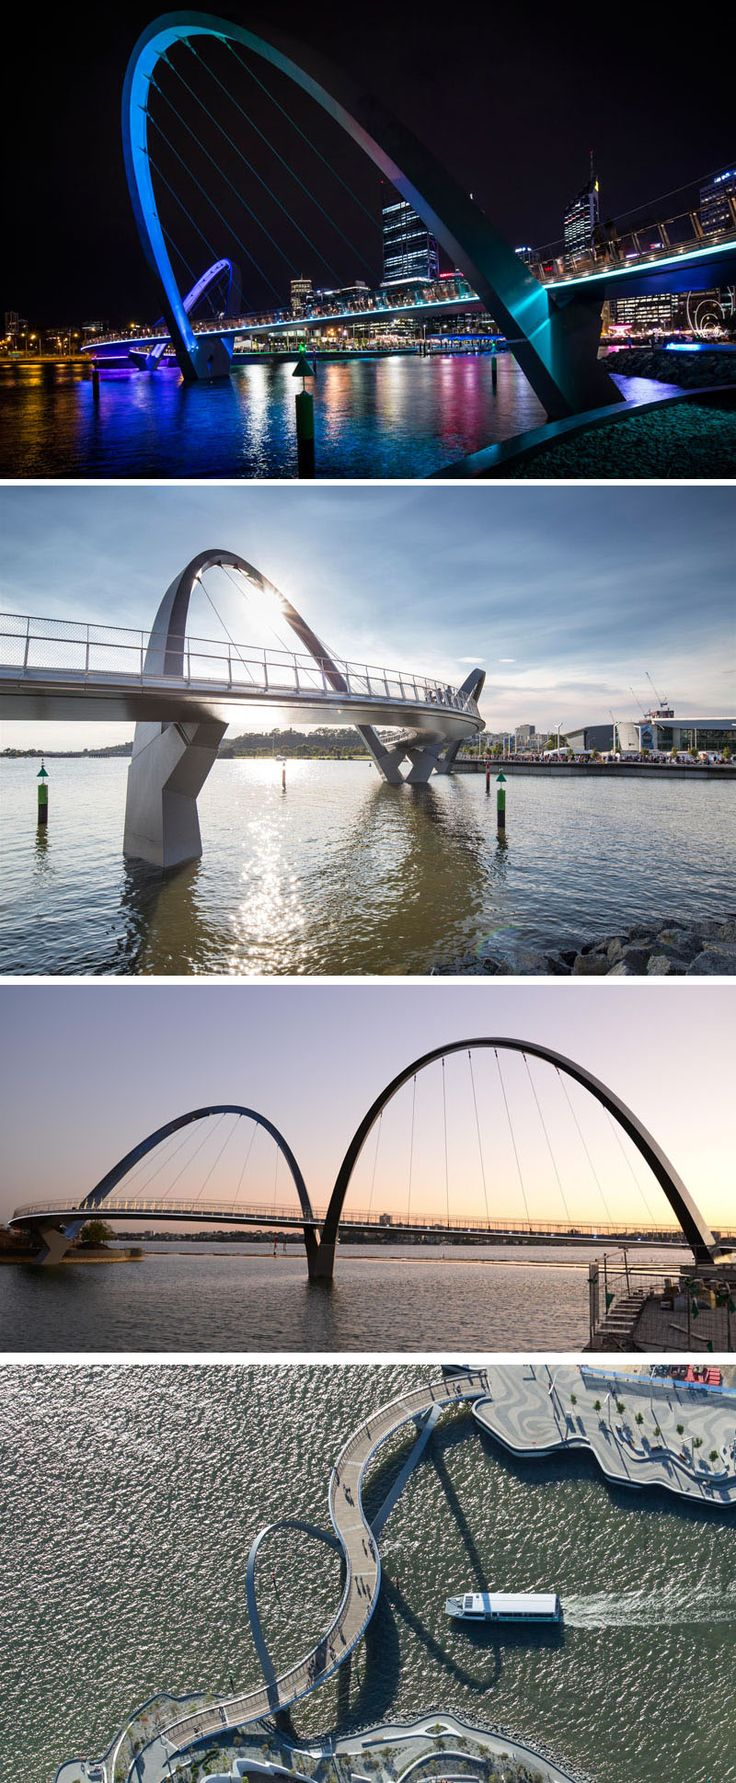 Arup Associates and Arup engineers have worked together to design a new pedestrian and cyclist bridge in Perth, Australia, named the Elizabeth Quay Bridge.